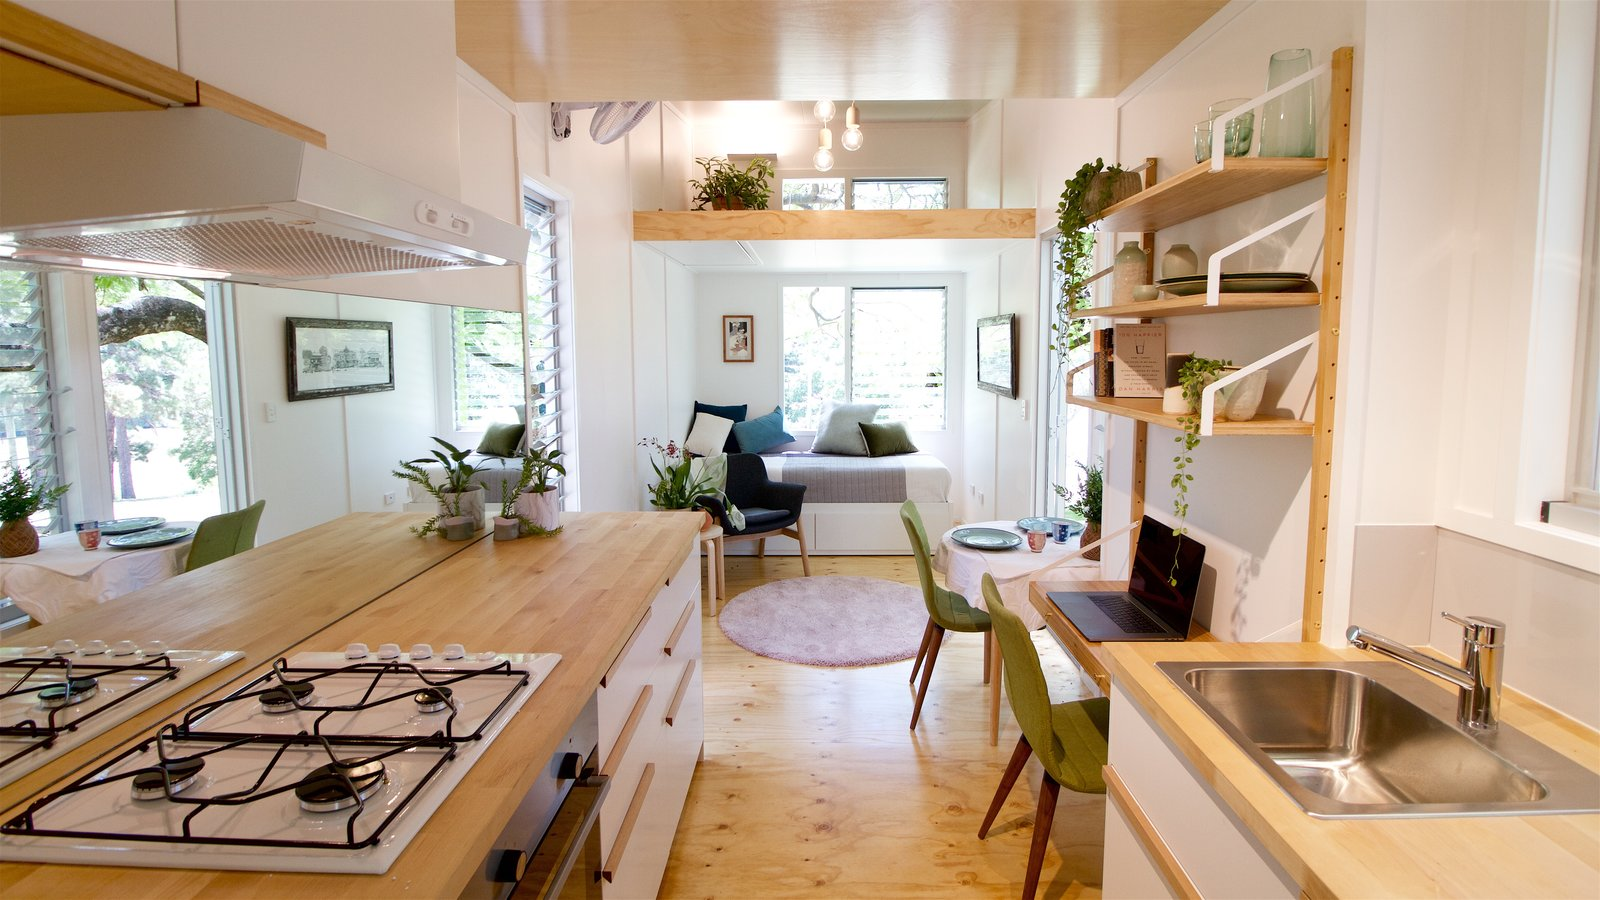 living room design 2018 philippines log home decorating ideas this midcentury-inspired tiny house radiates clever ...